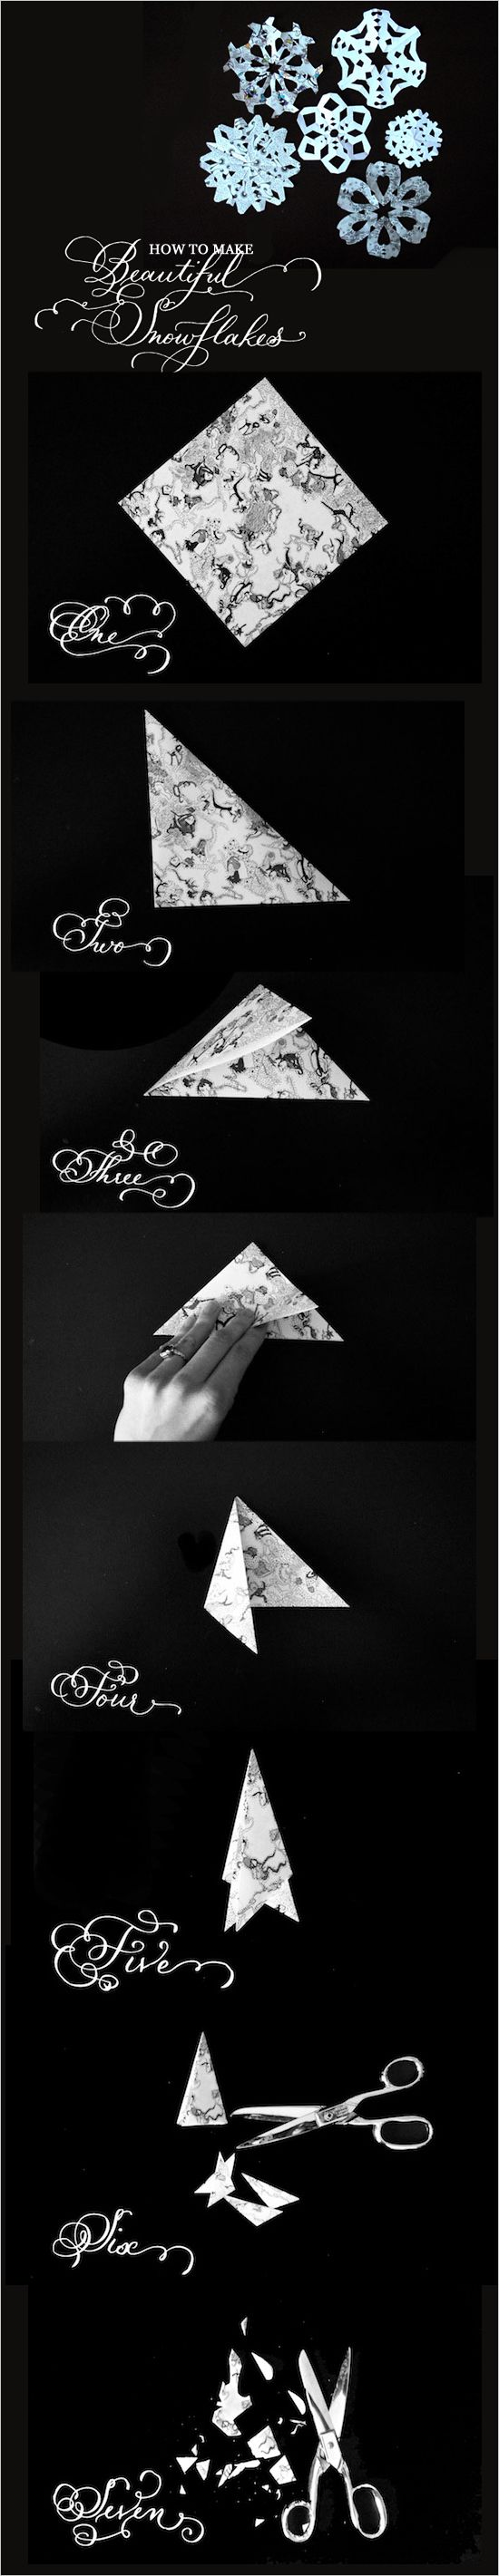 """""""How to Make Beautiful Paper Snowflakes"""".  OMG, this tutorial isn't even meant to be funny, but for some reason I think it's hilarious.  There I was, following the pictures earnestly (thinking to myself """"yep, uh-huh, uh-huh, yeah, okay"""")... right up until I had a big chuckle-snort at step #7.  Is it just me, or does that paper look like it was shredded by Edward Scissorhands?!"""